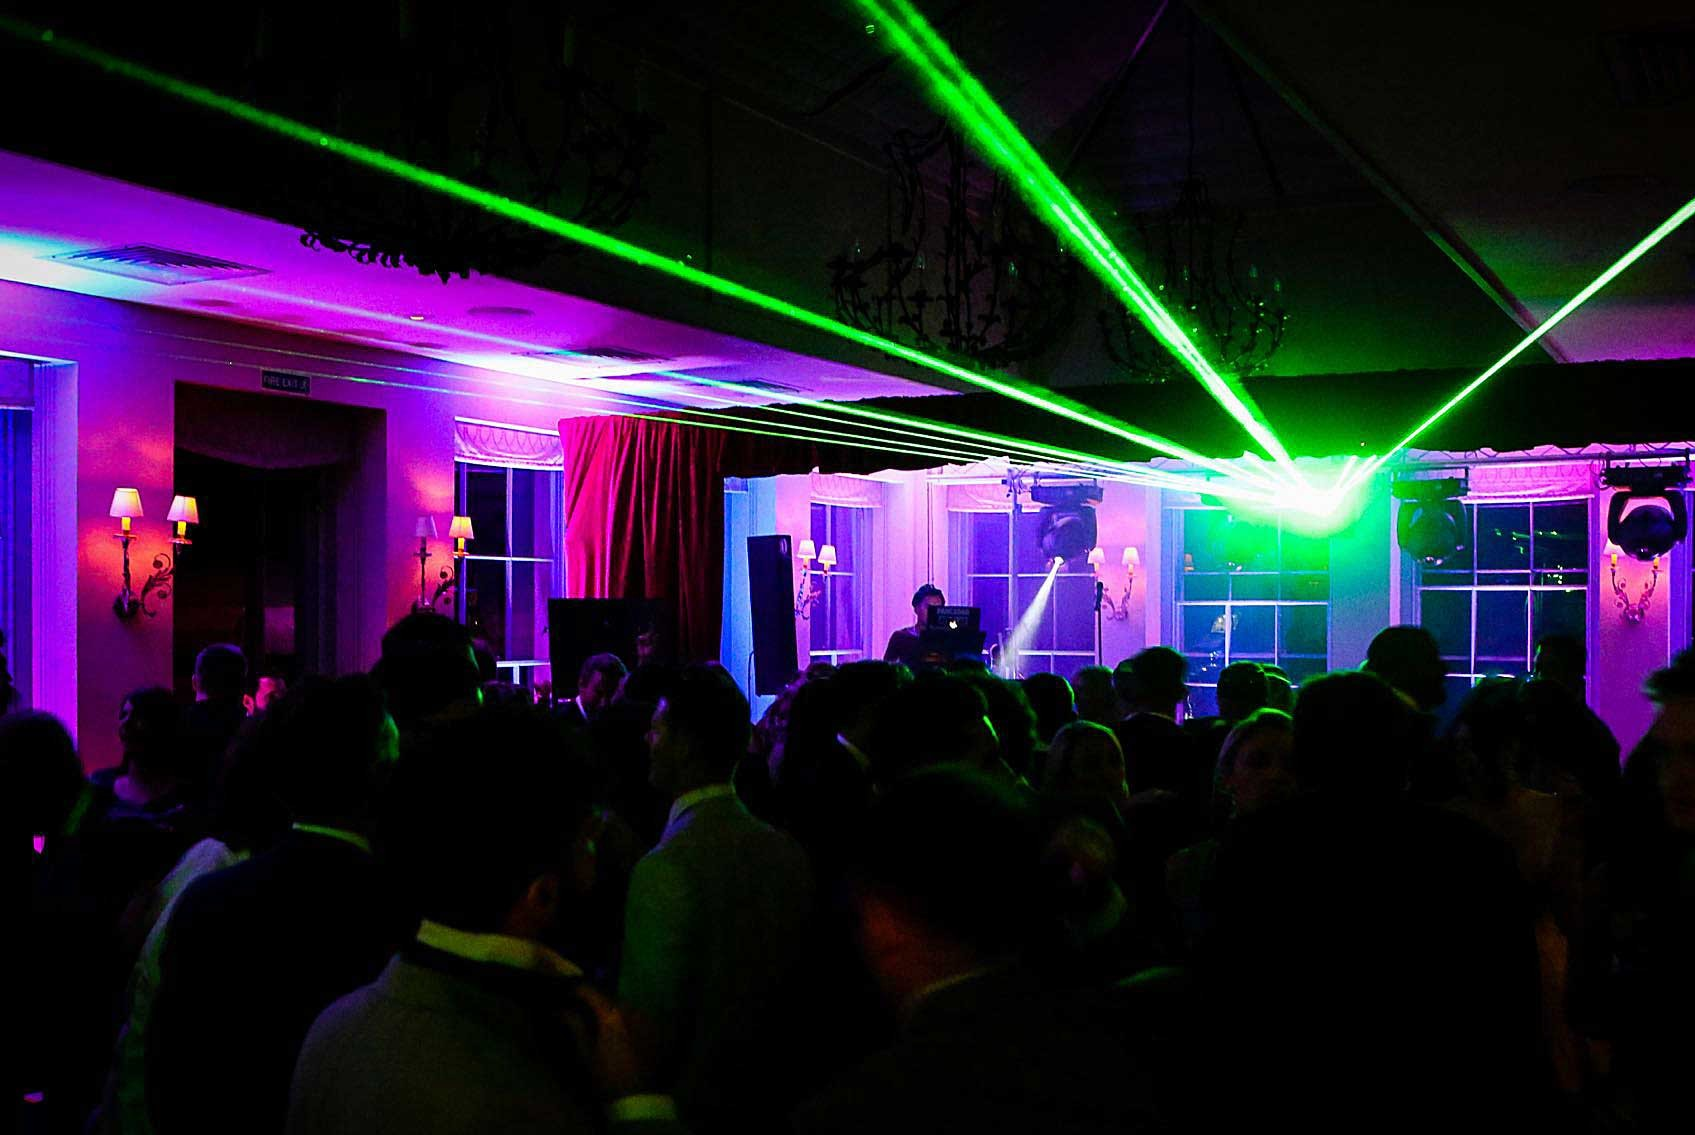 Image of a Lazer in Green with stage